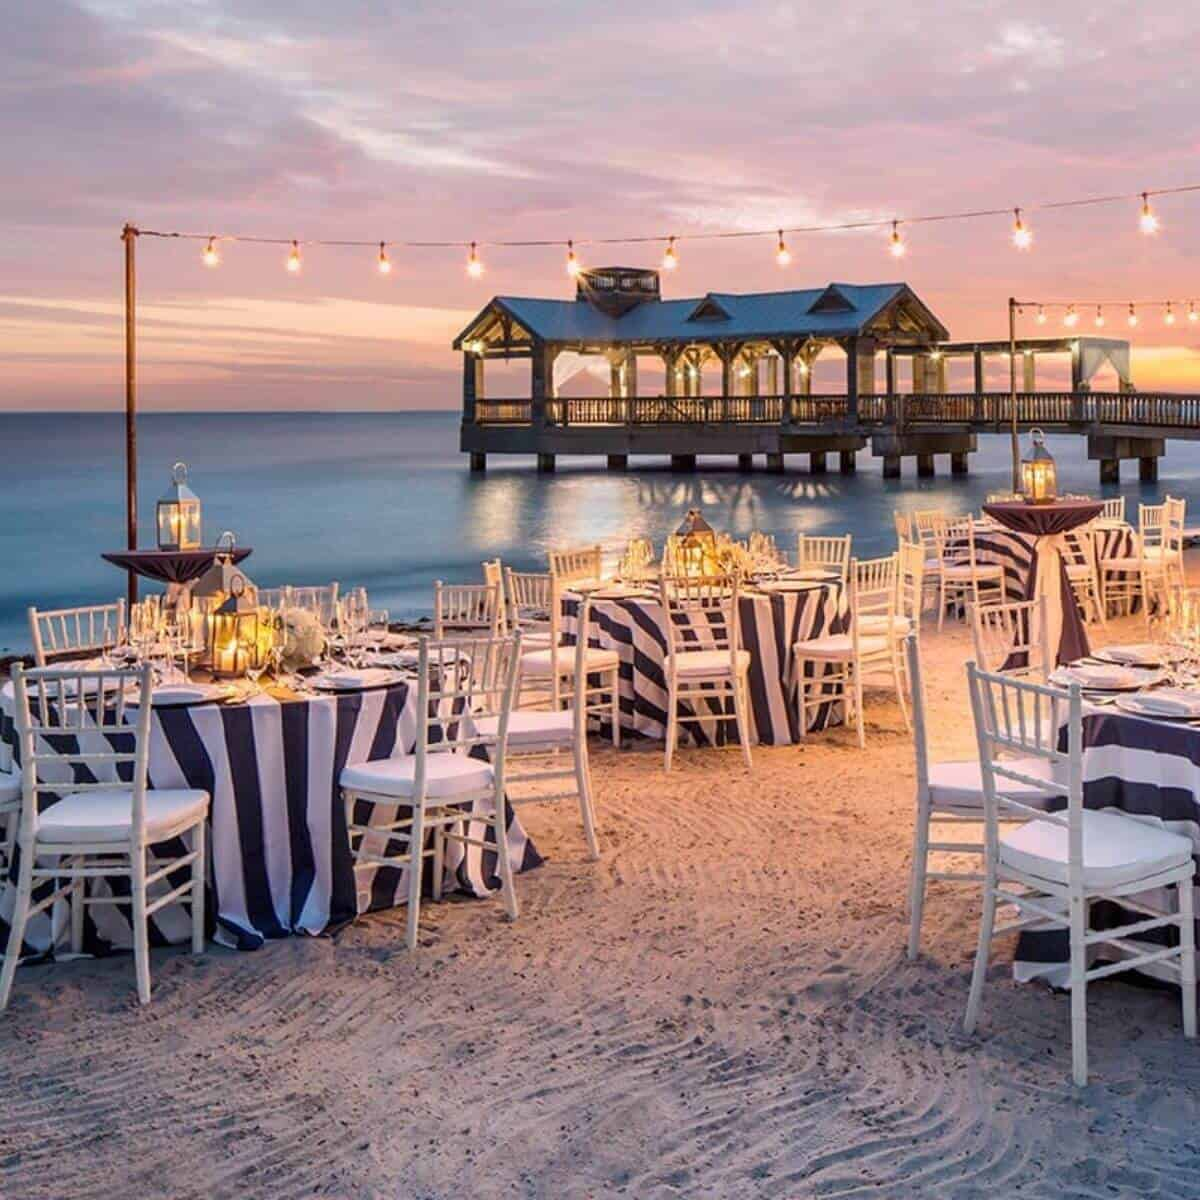 Dining tables and chairs on the beach at The Reach Key West.